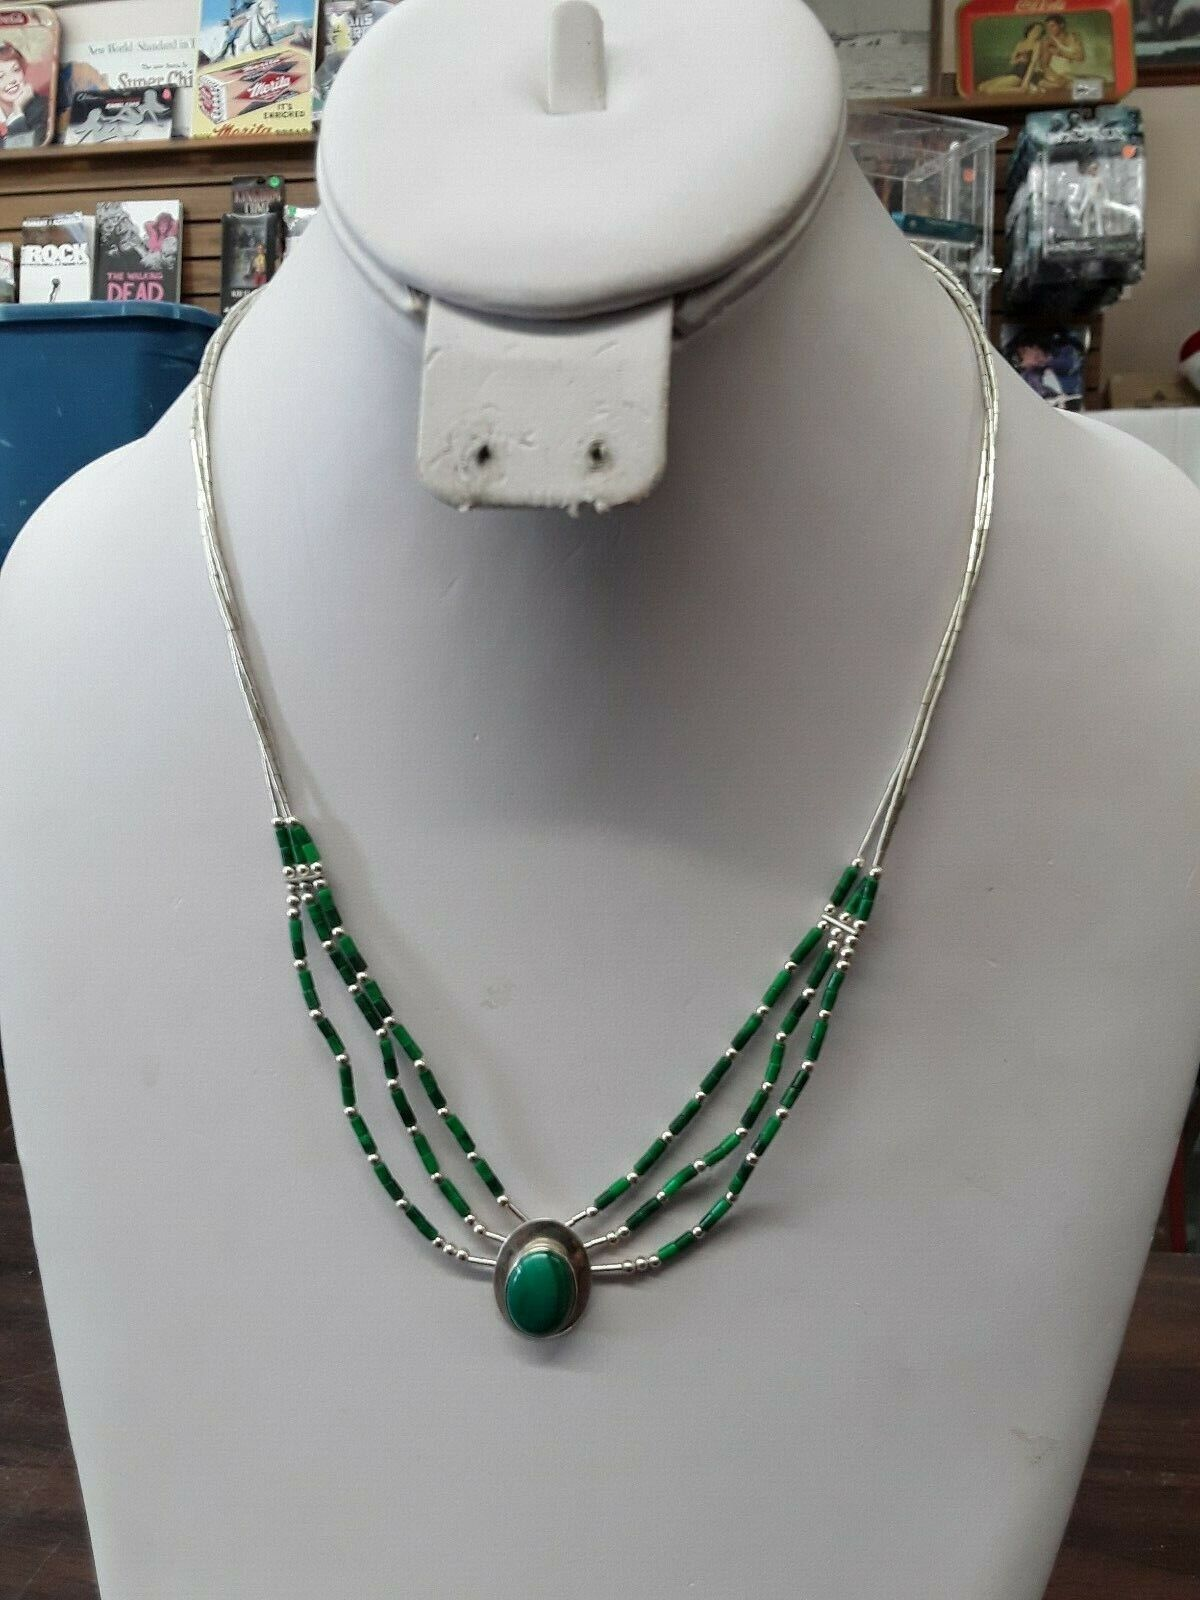 Ella Peter Sterling Silver And Malachite 3 Strand Necklace 19.5 Inches - $35.00